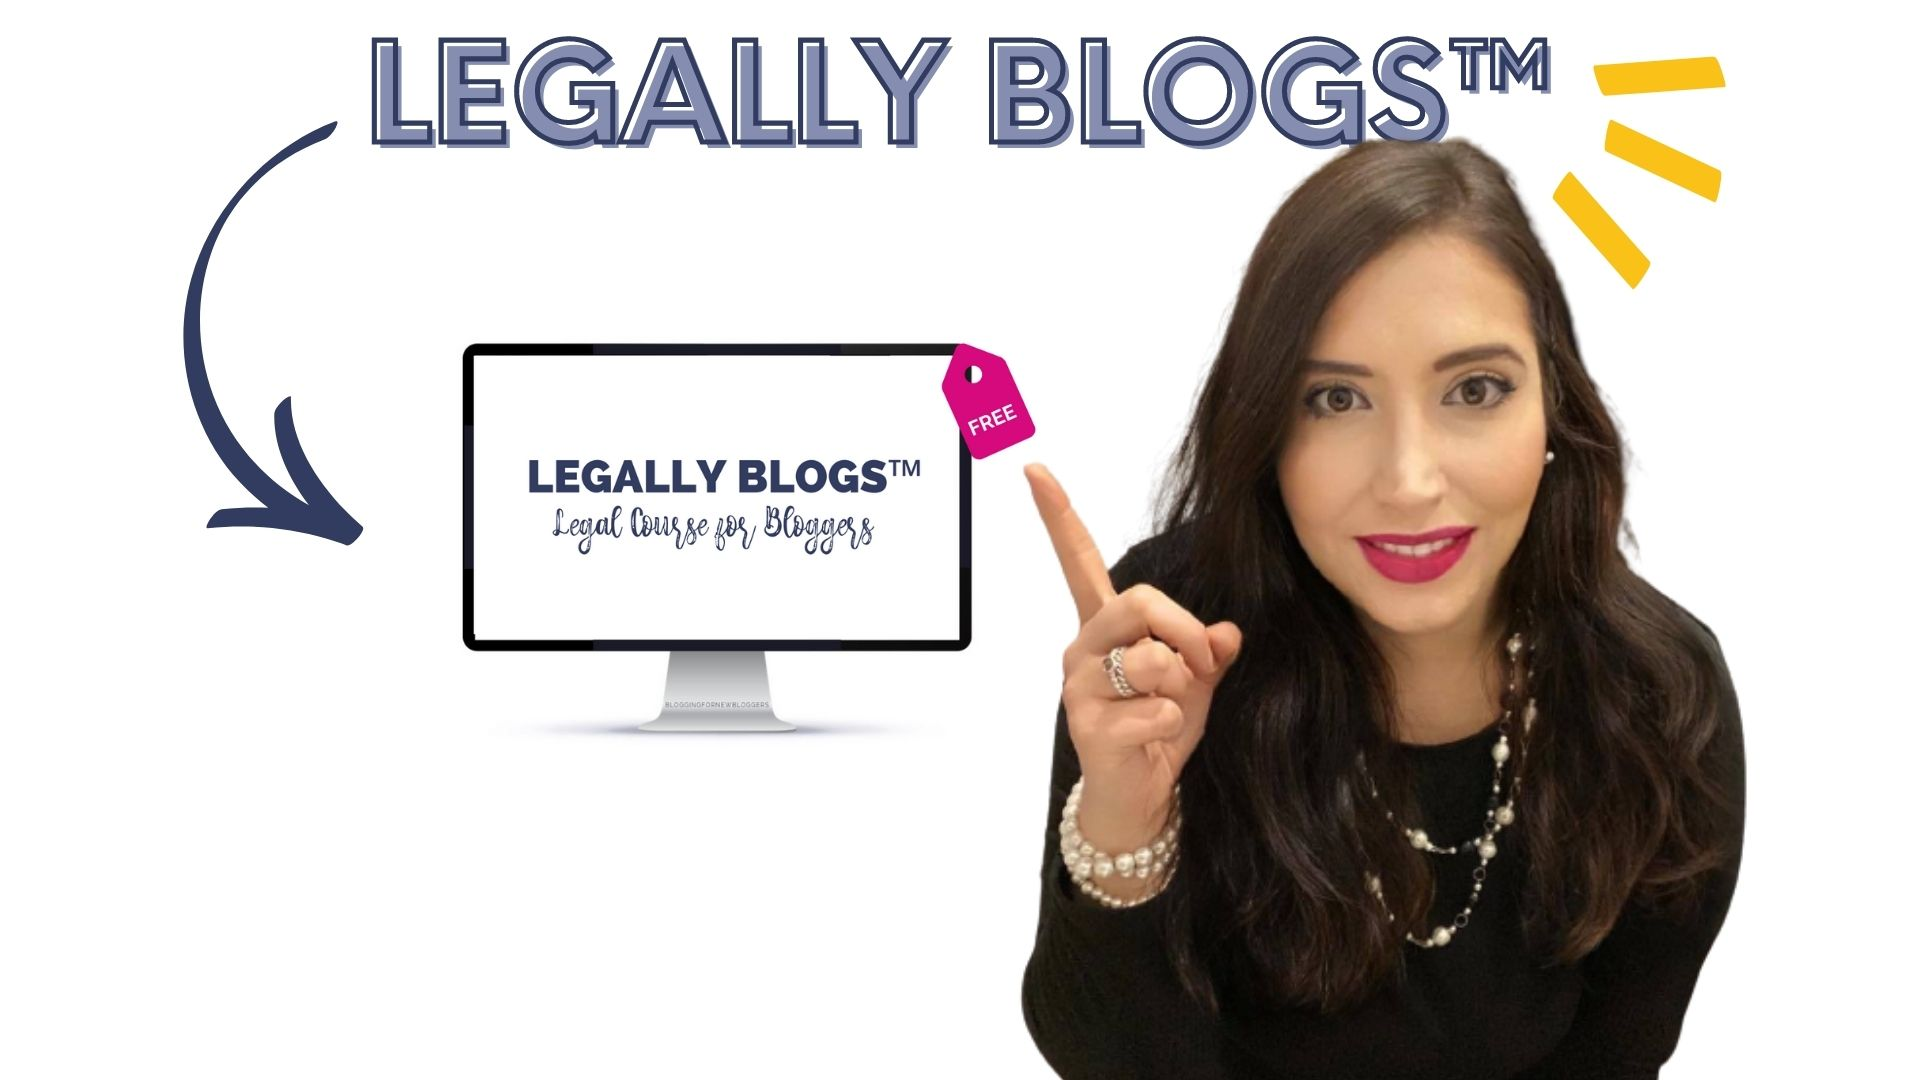 Legally Blogs - legal course for bloggers